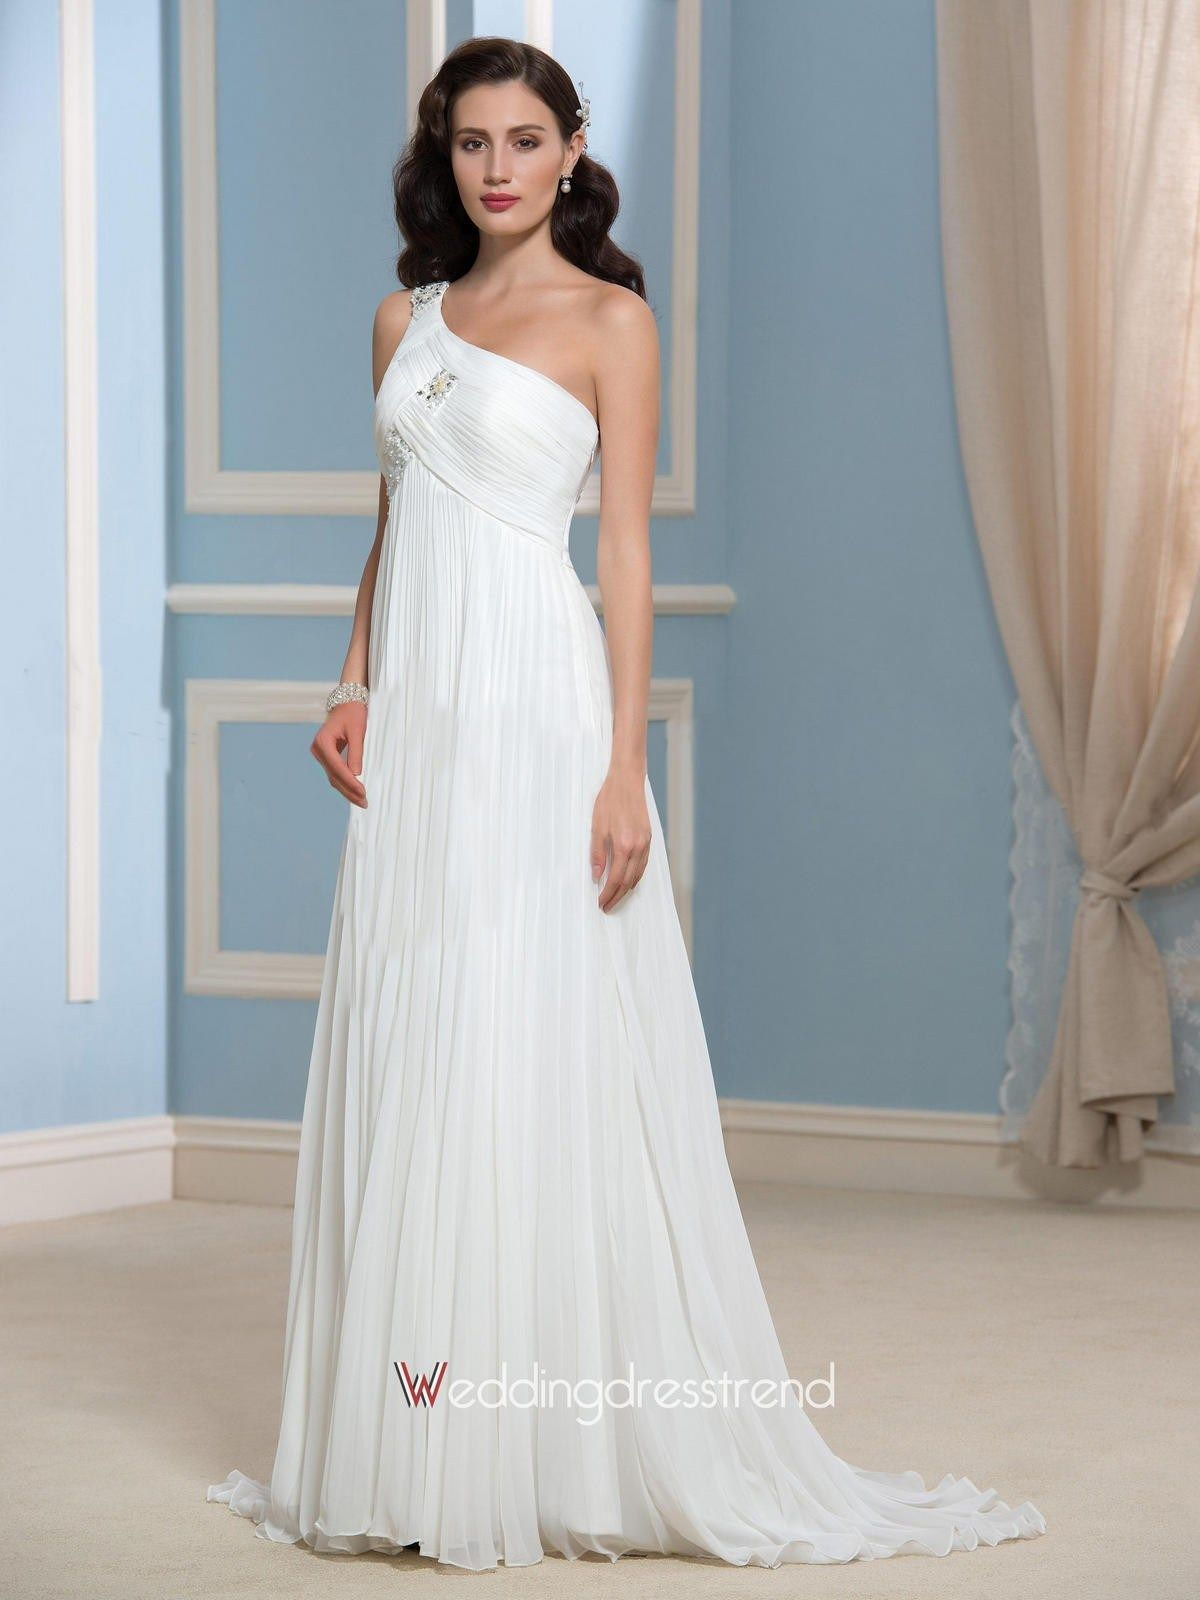 53 Lovely Dresses for A Beach Wedding Graphics Wedding